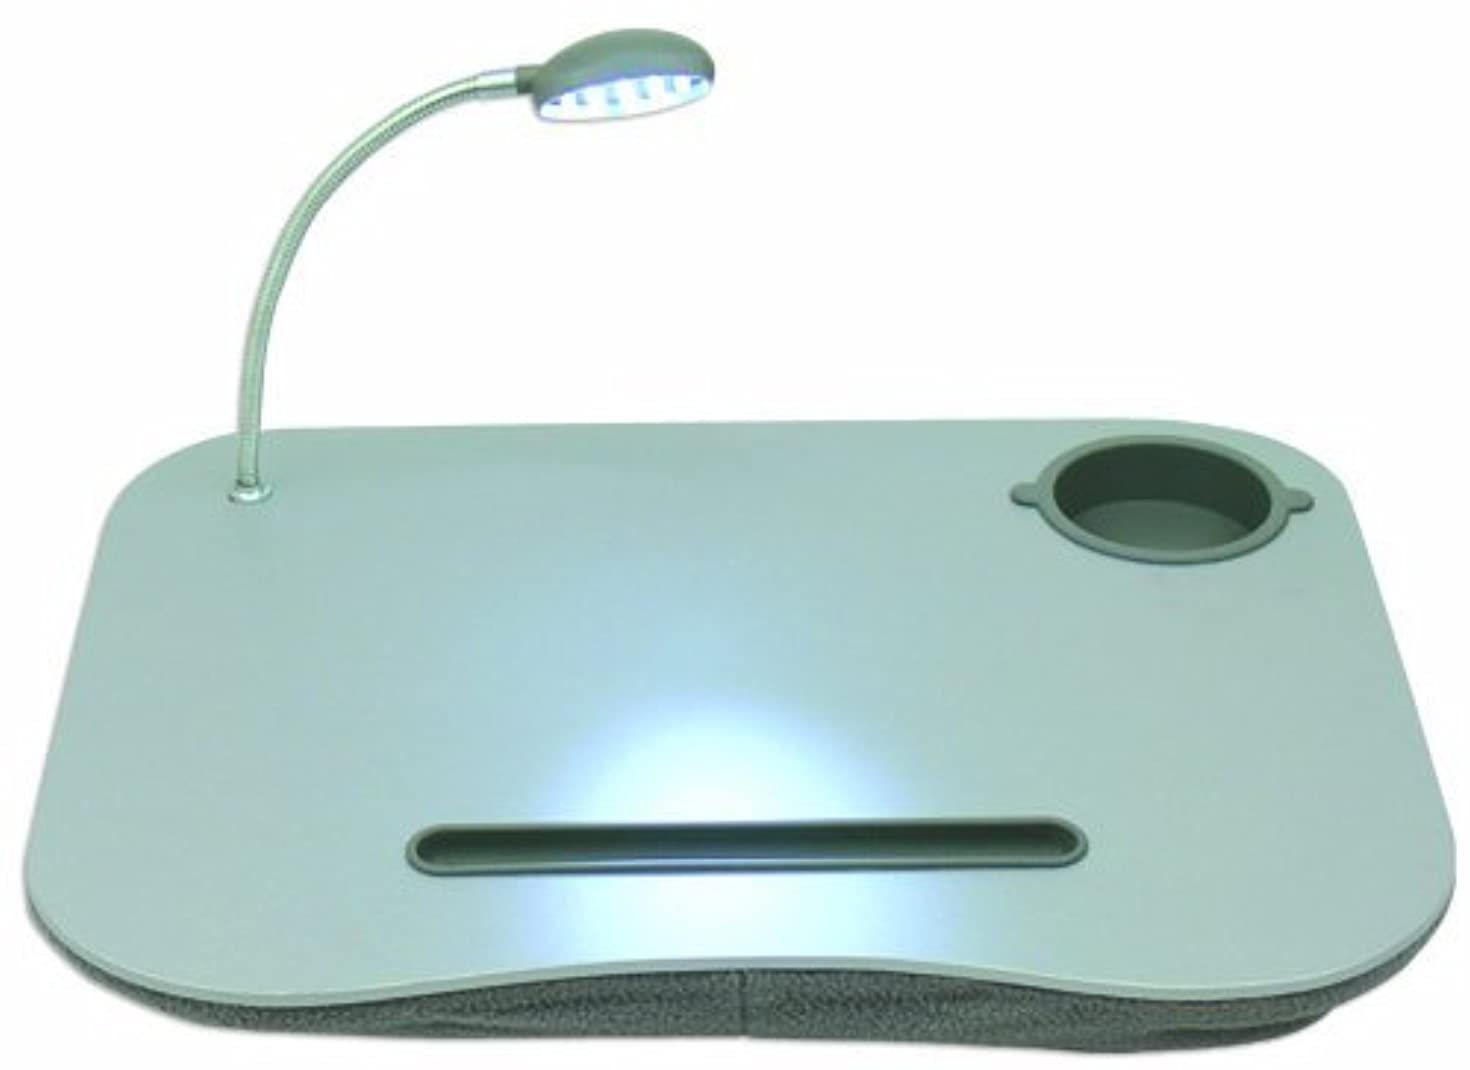 QVS LD-LED Notebook Stand with LED Light, Gray